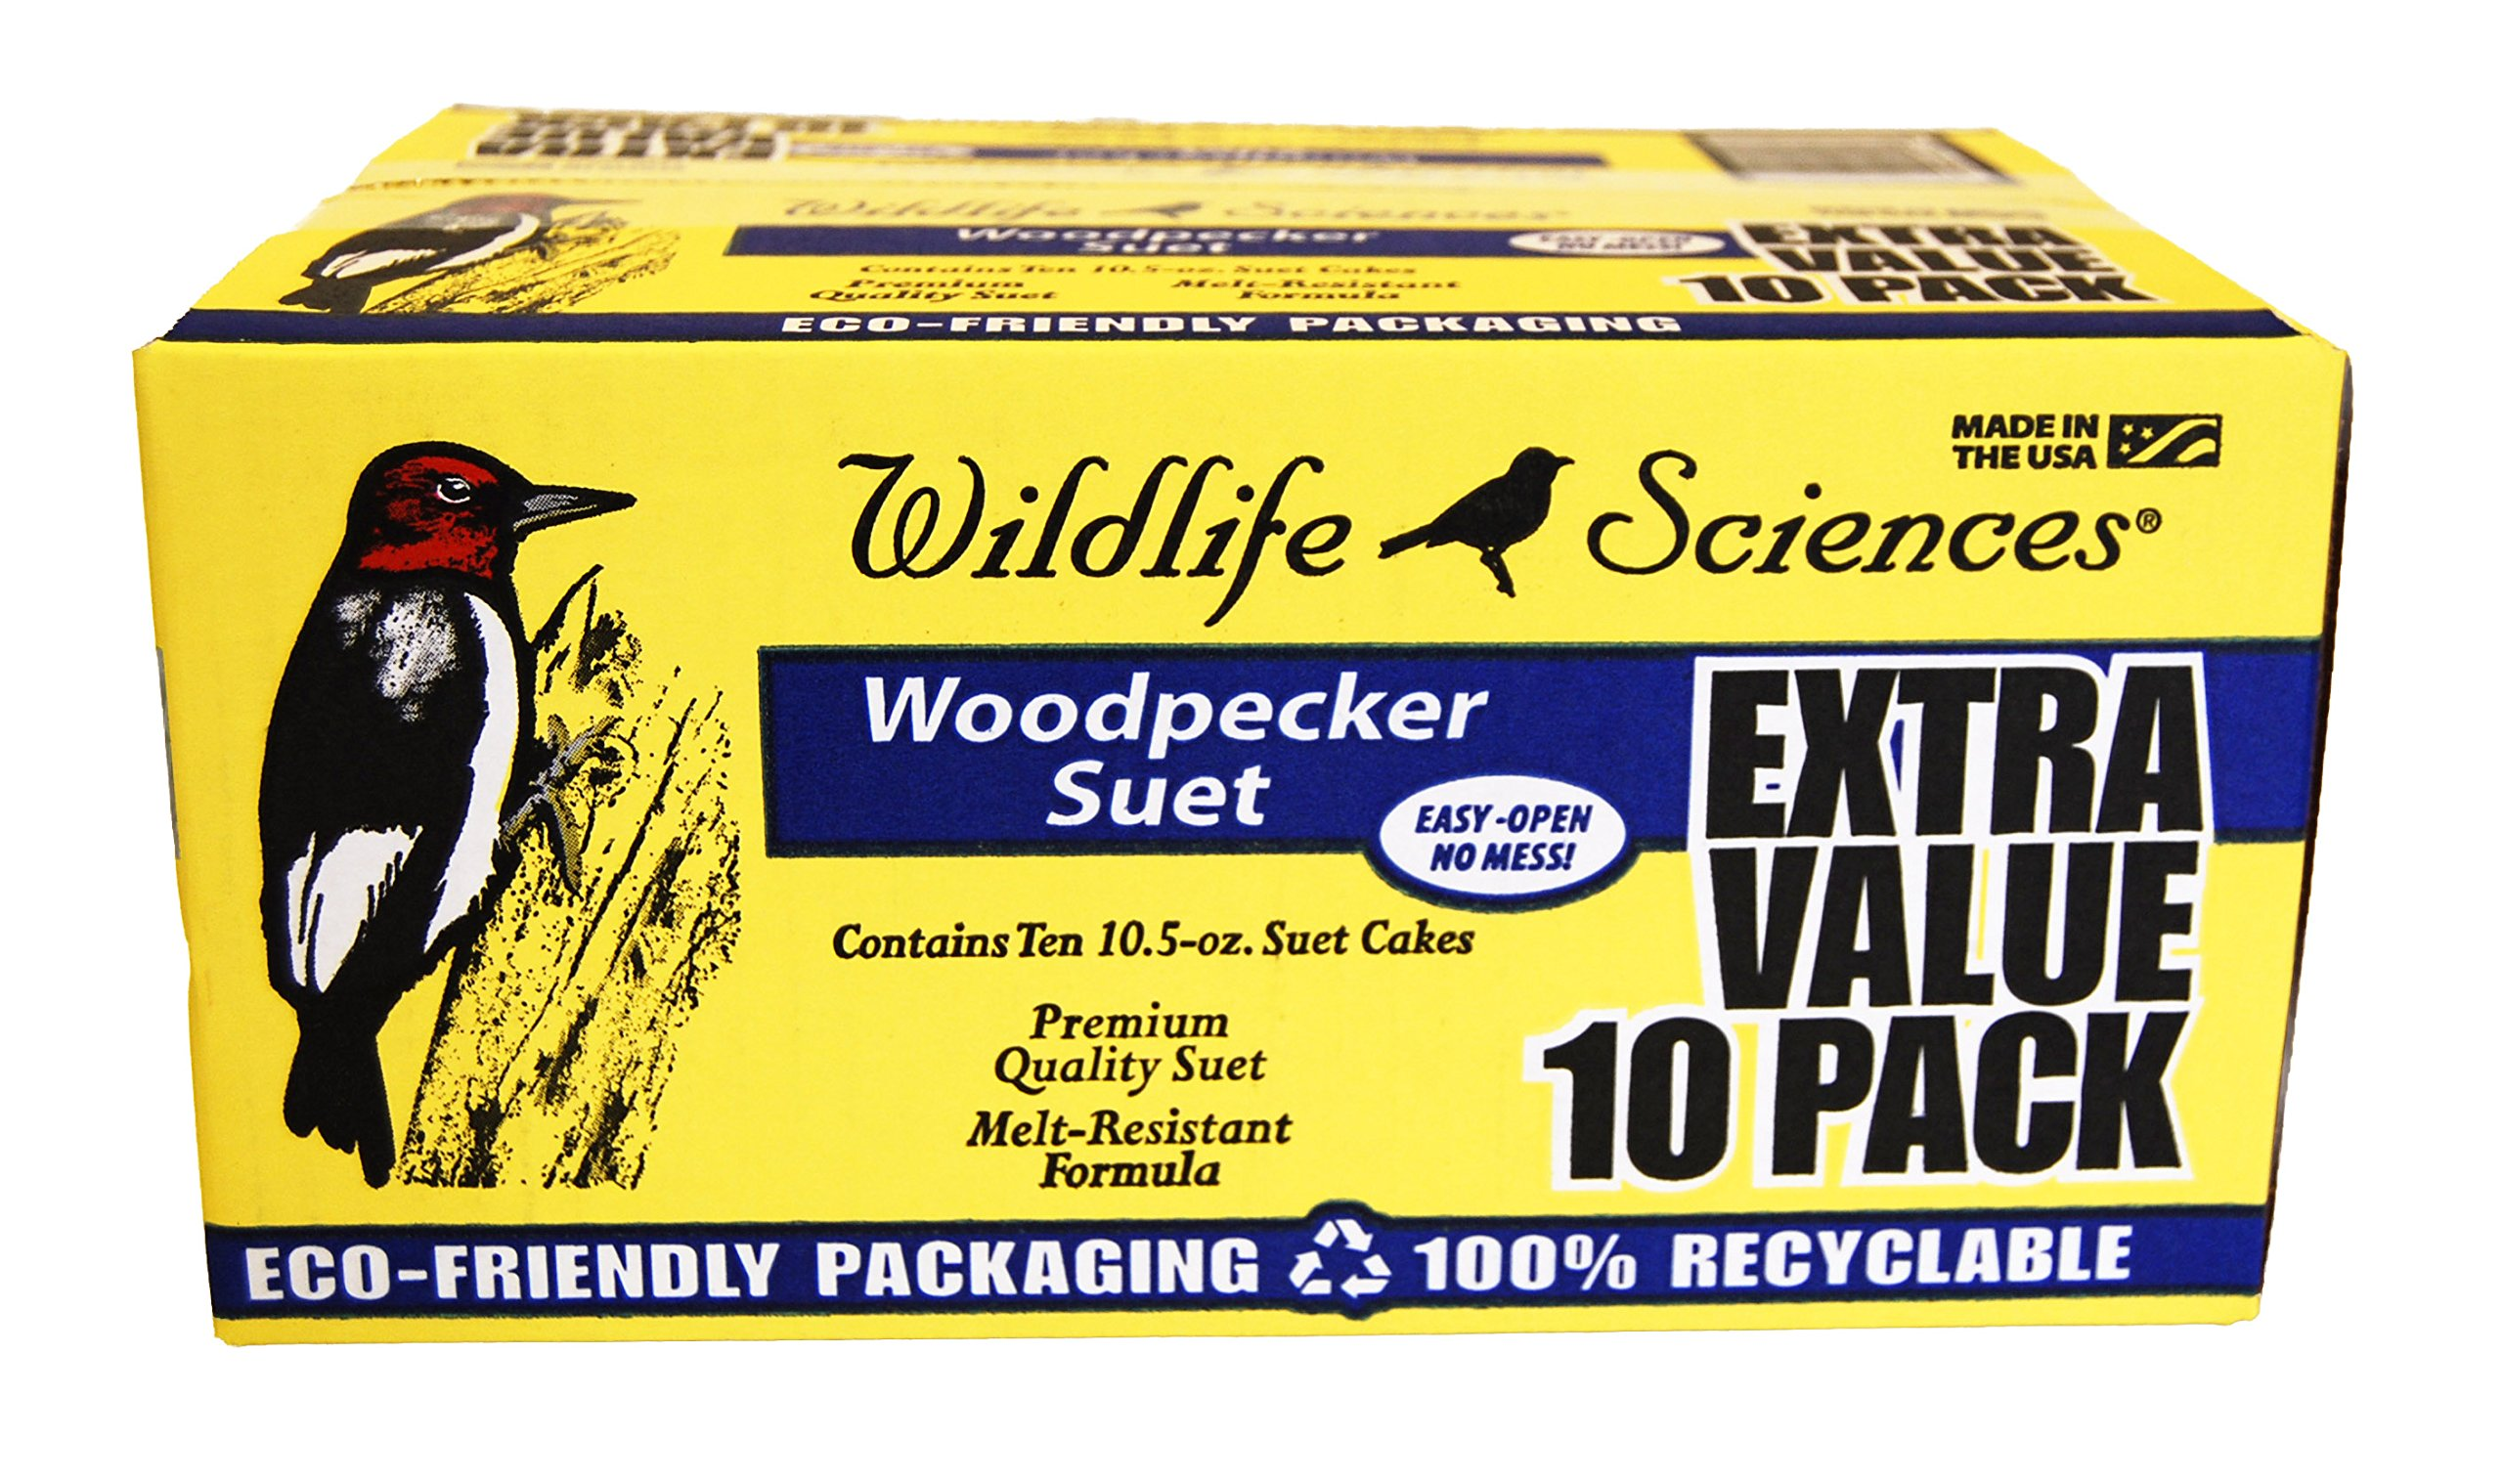 Wildlife Sciences Woodpecker Suet 10 Pack by Wildlife Sciences